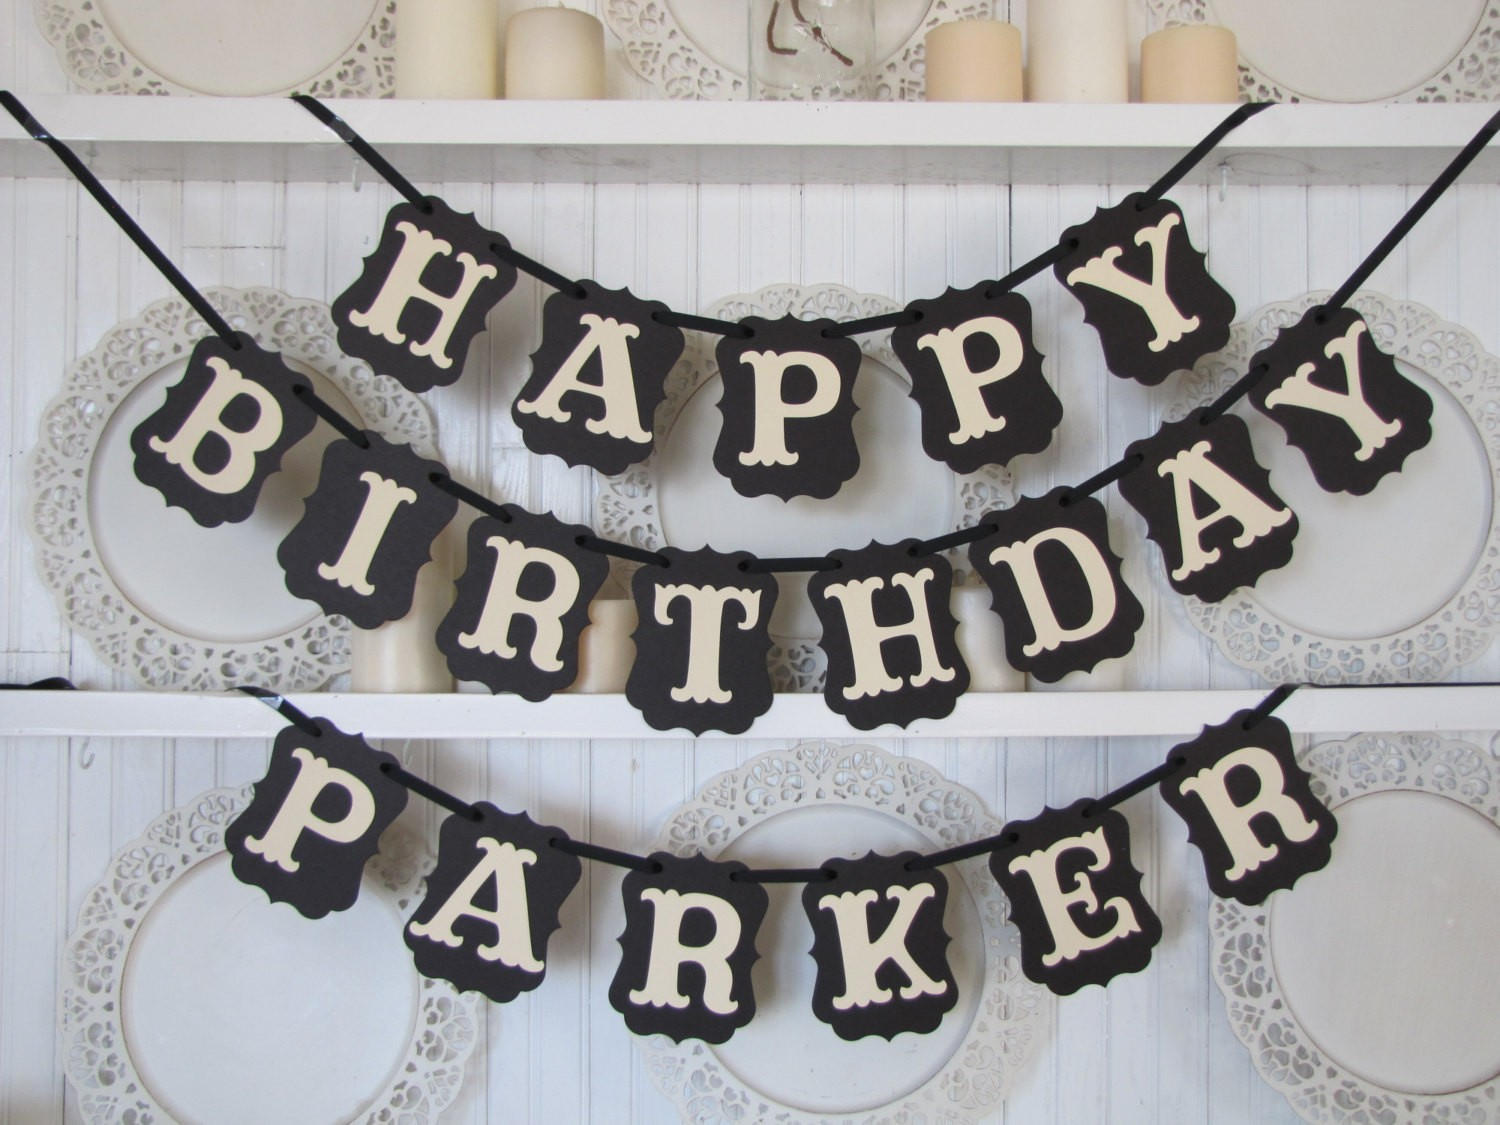 personalized happy birthday banner ; custom%2520name%2520happy%2520birthday%2520%2520banner%2520-%2520diy%2520garlands%2520for%25202014%2520party-f08754